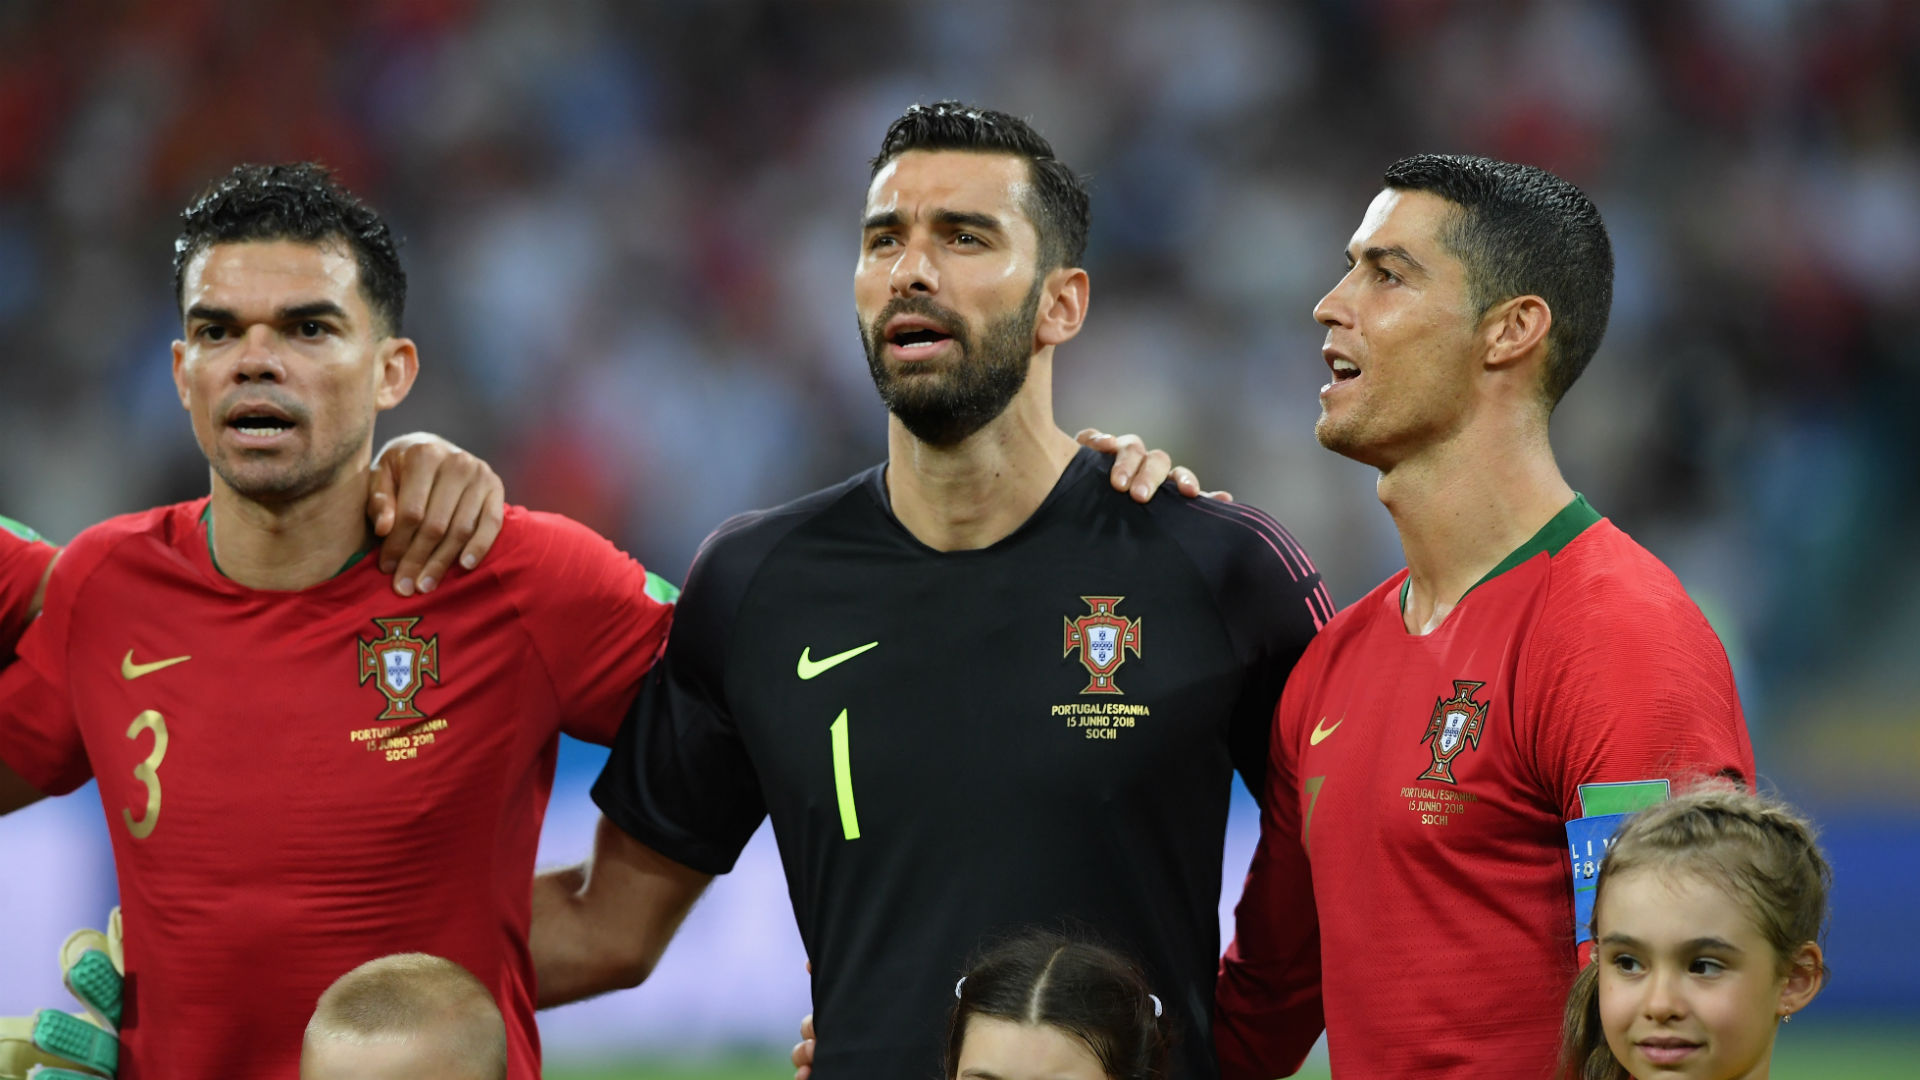 World Cup stars mostly stifled, with 1 Portuguese exception